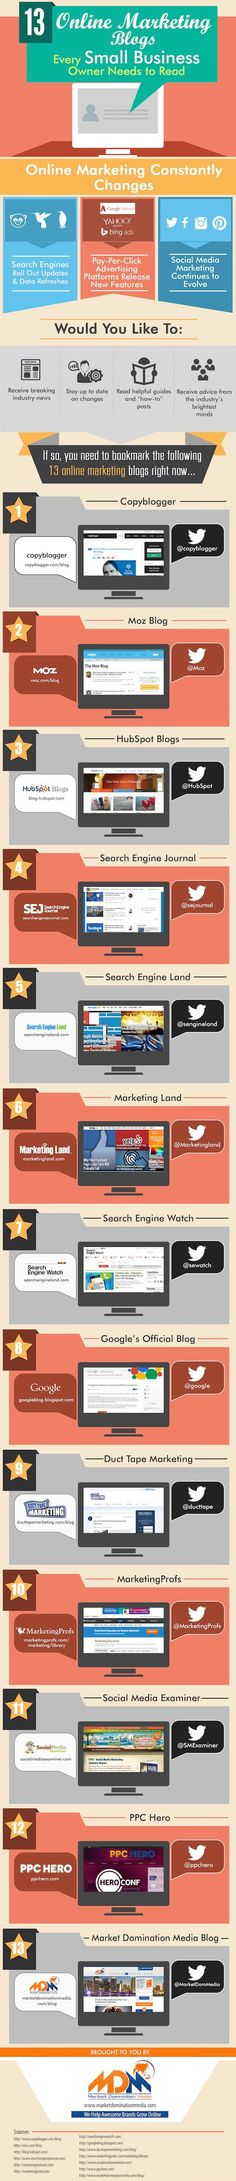 13 Online Marketing Blogs You Should be Reading (Infographic)